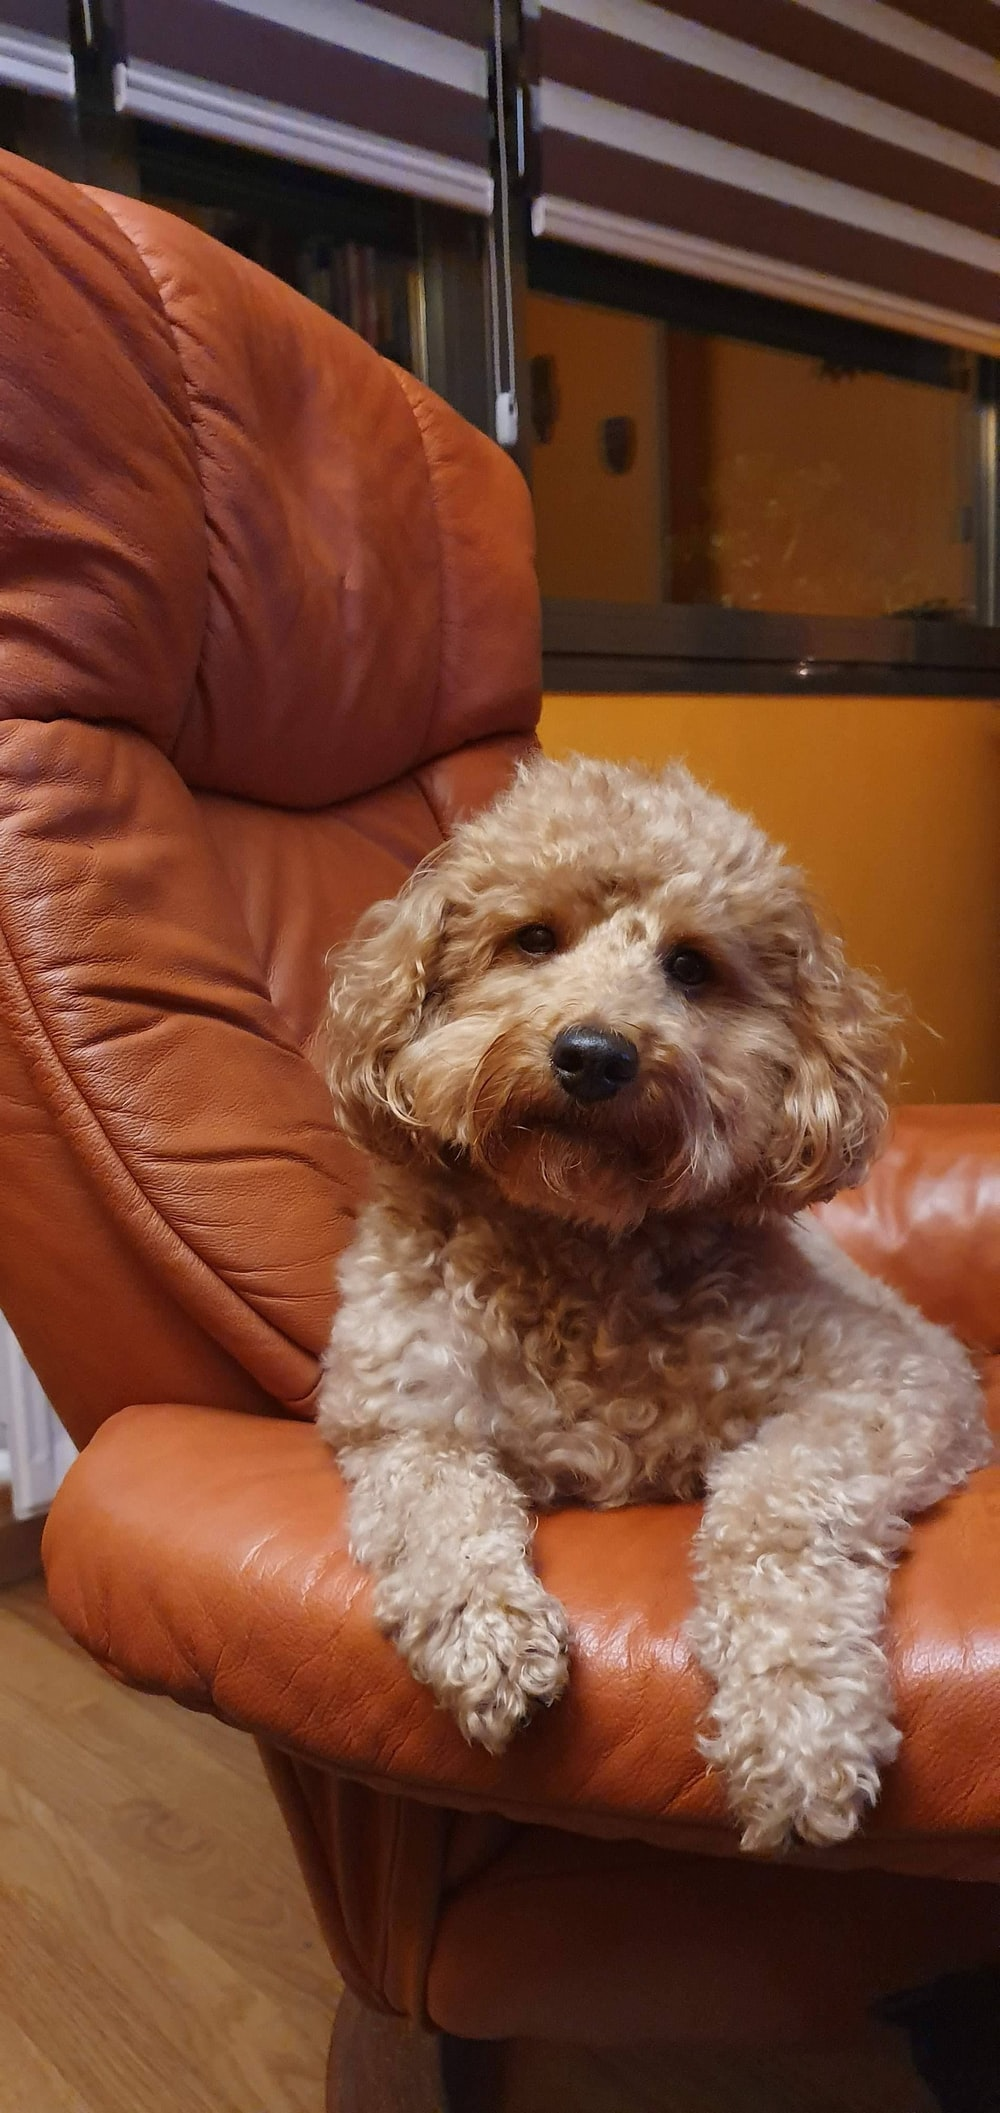 brown curly coated small dog on orange leather sofa